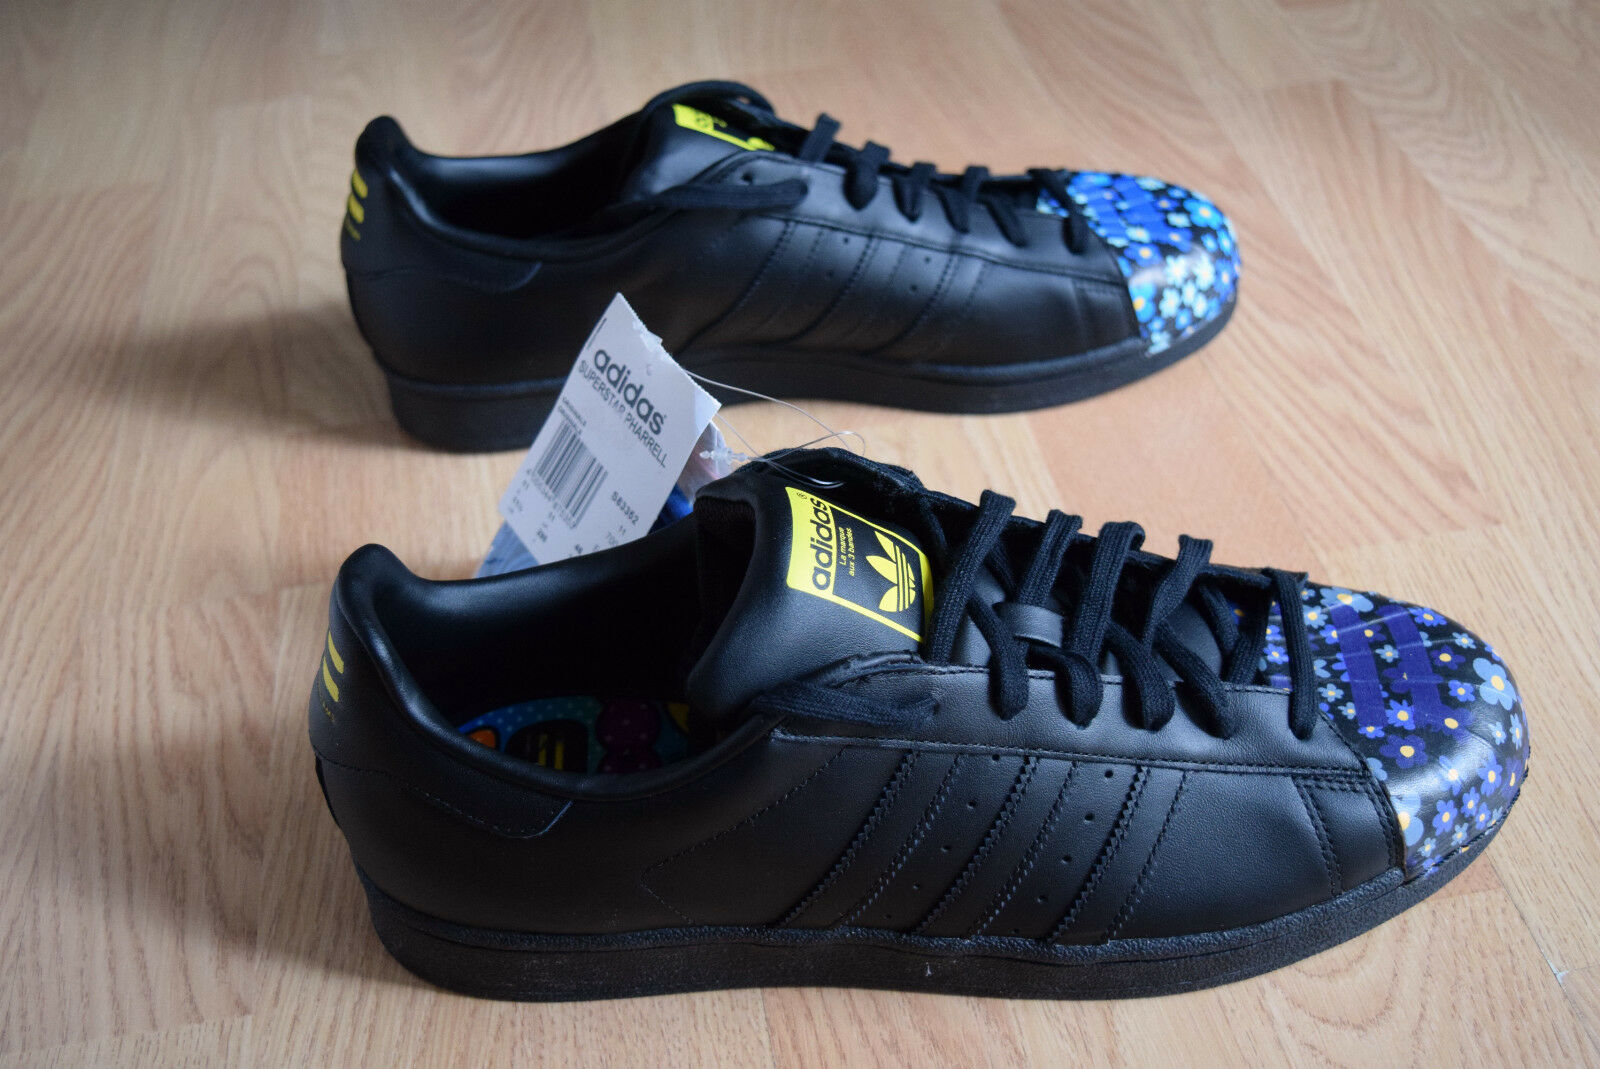 Adidas Superstar smitH Pharell 46 46,5 48,5 Williams sTan smitH Superstar pw Supercolor S83352 7b6916